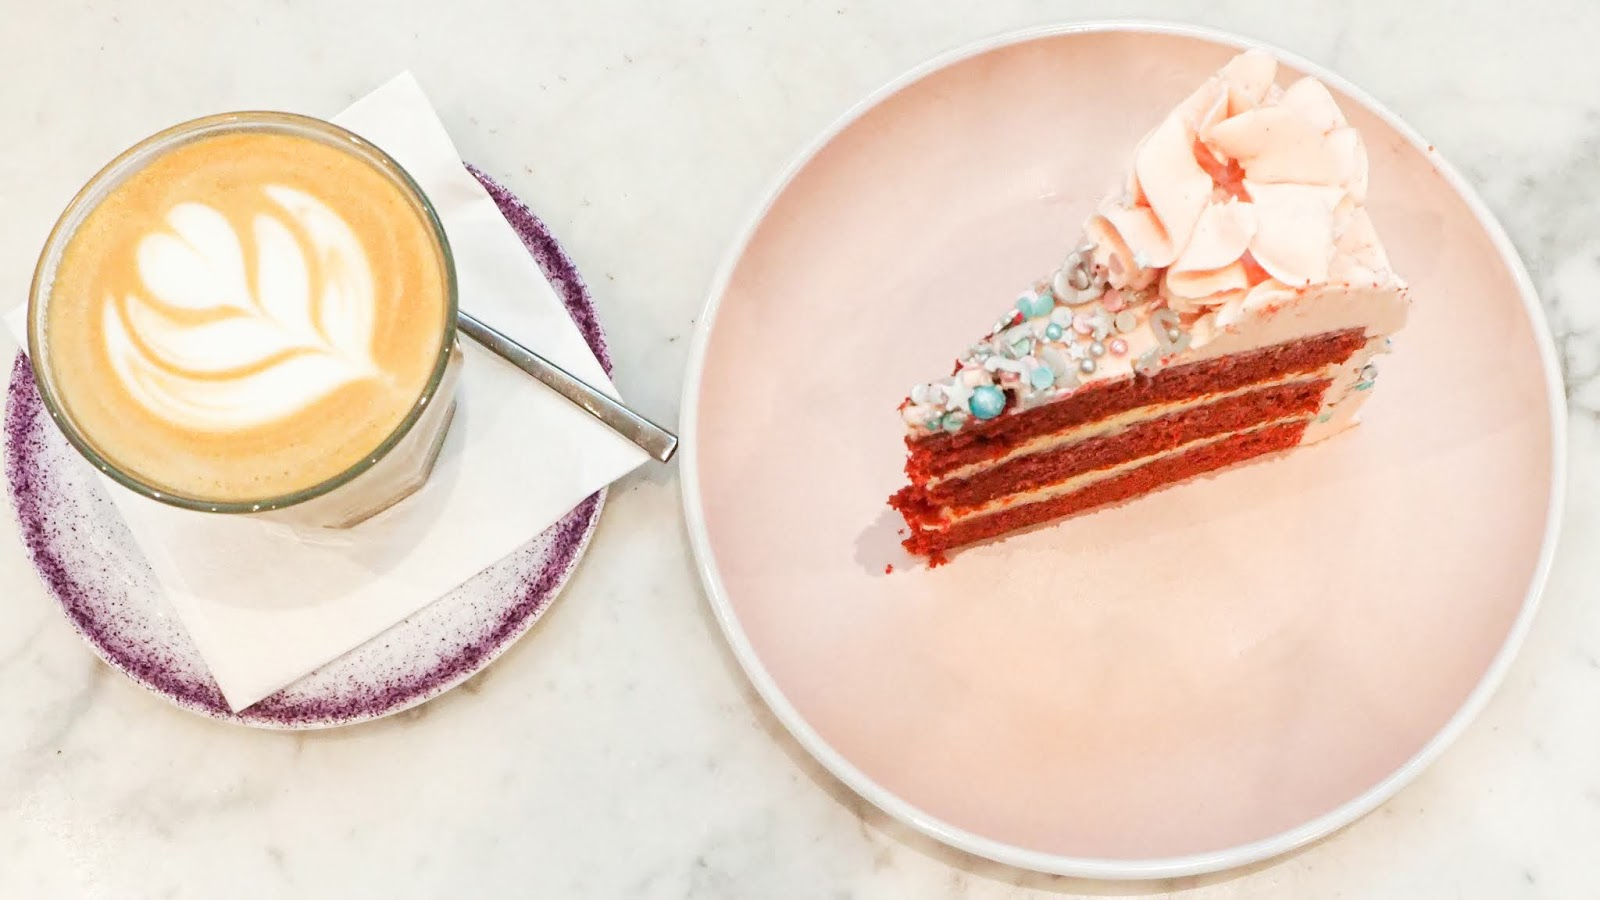 Red velvet cake and a skinny latte at EL&N Cafe